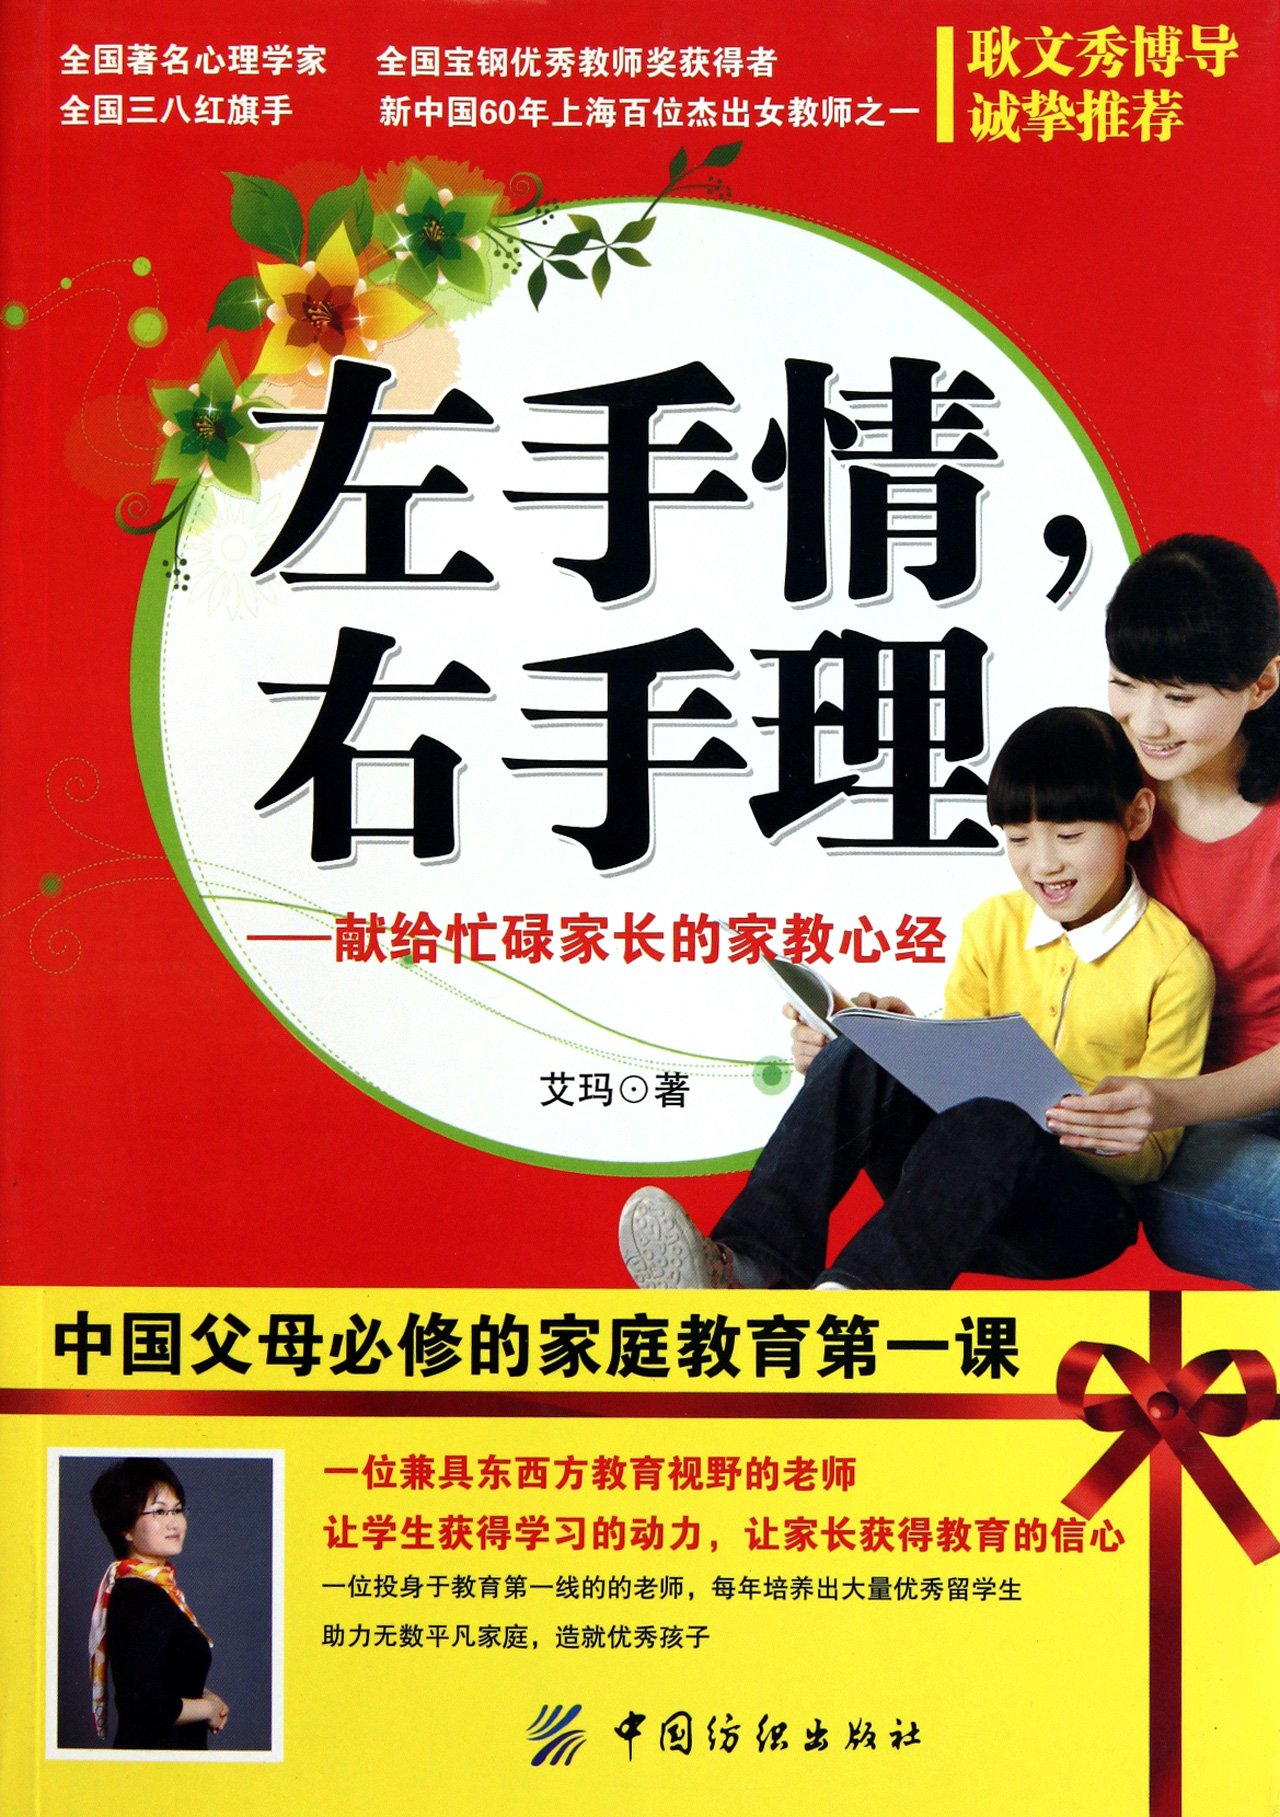 Affection in Left-hand and Principle in Right Hand: Family Education Bible for Busy Parents (Chinese Edition) ebook